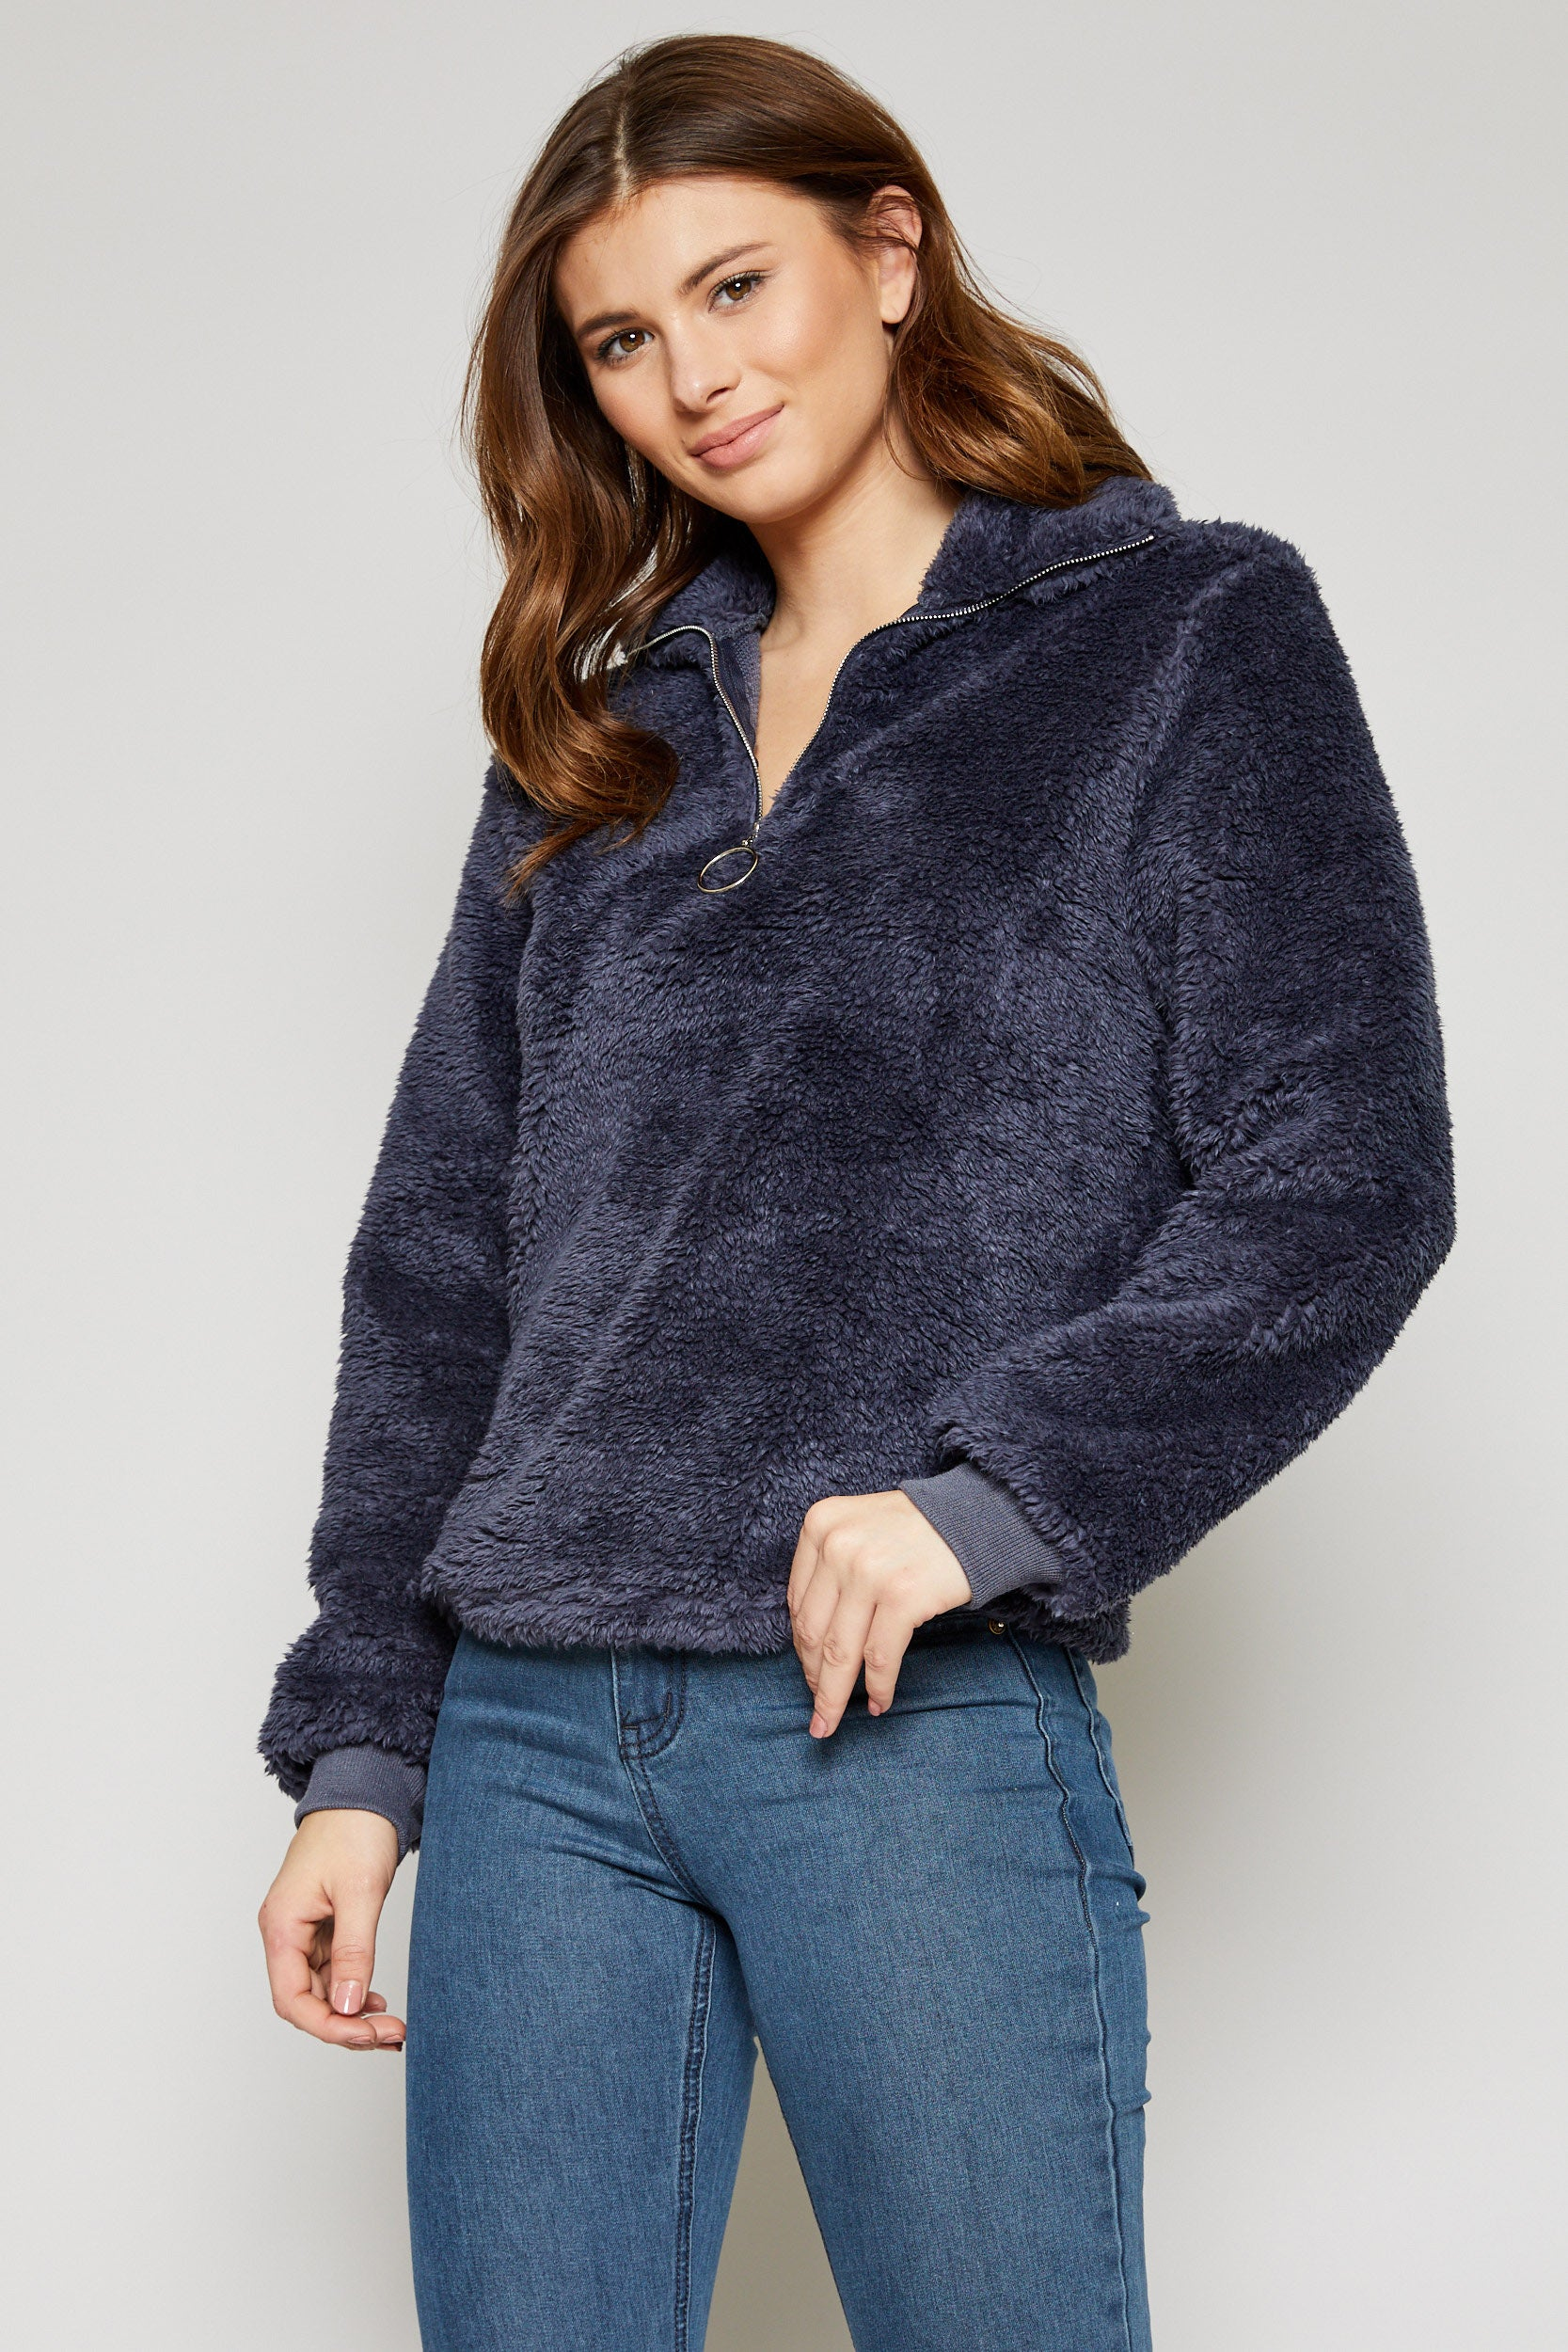 On Cloud Nine Pullover in Navy